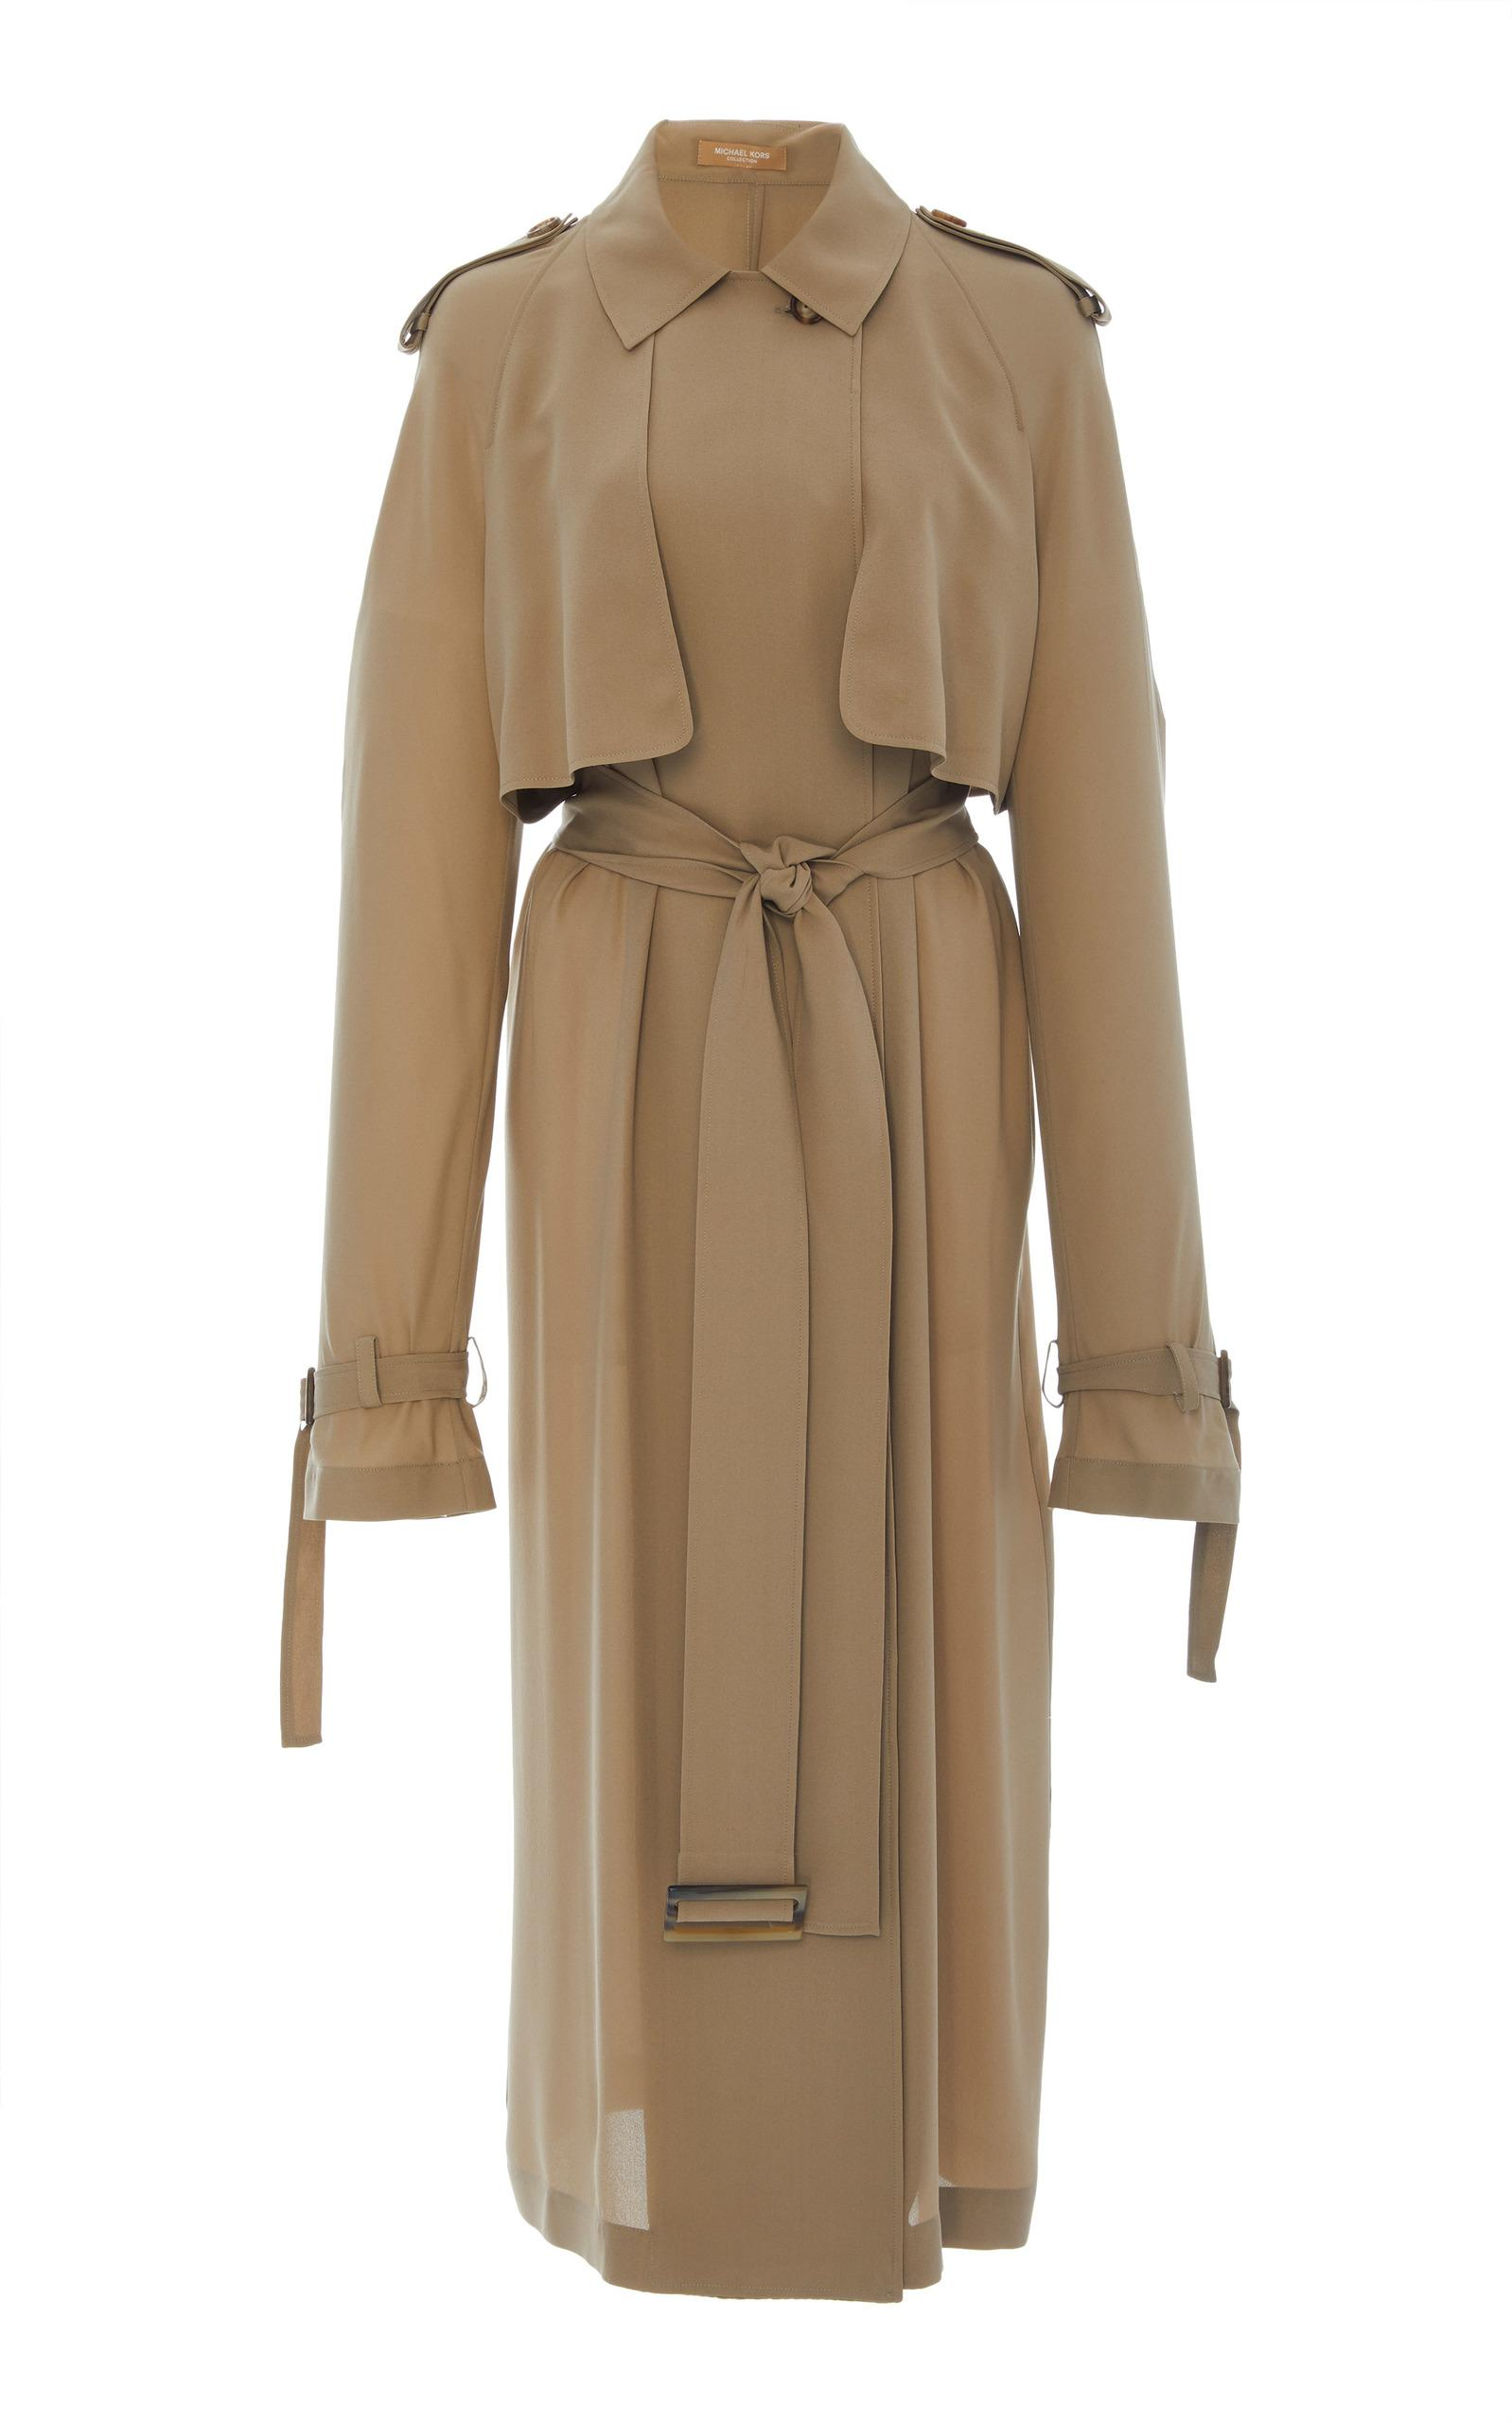 Michael Kors Silk Trench Dress With Belt In Neutral